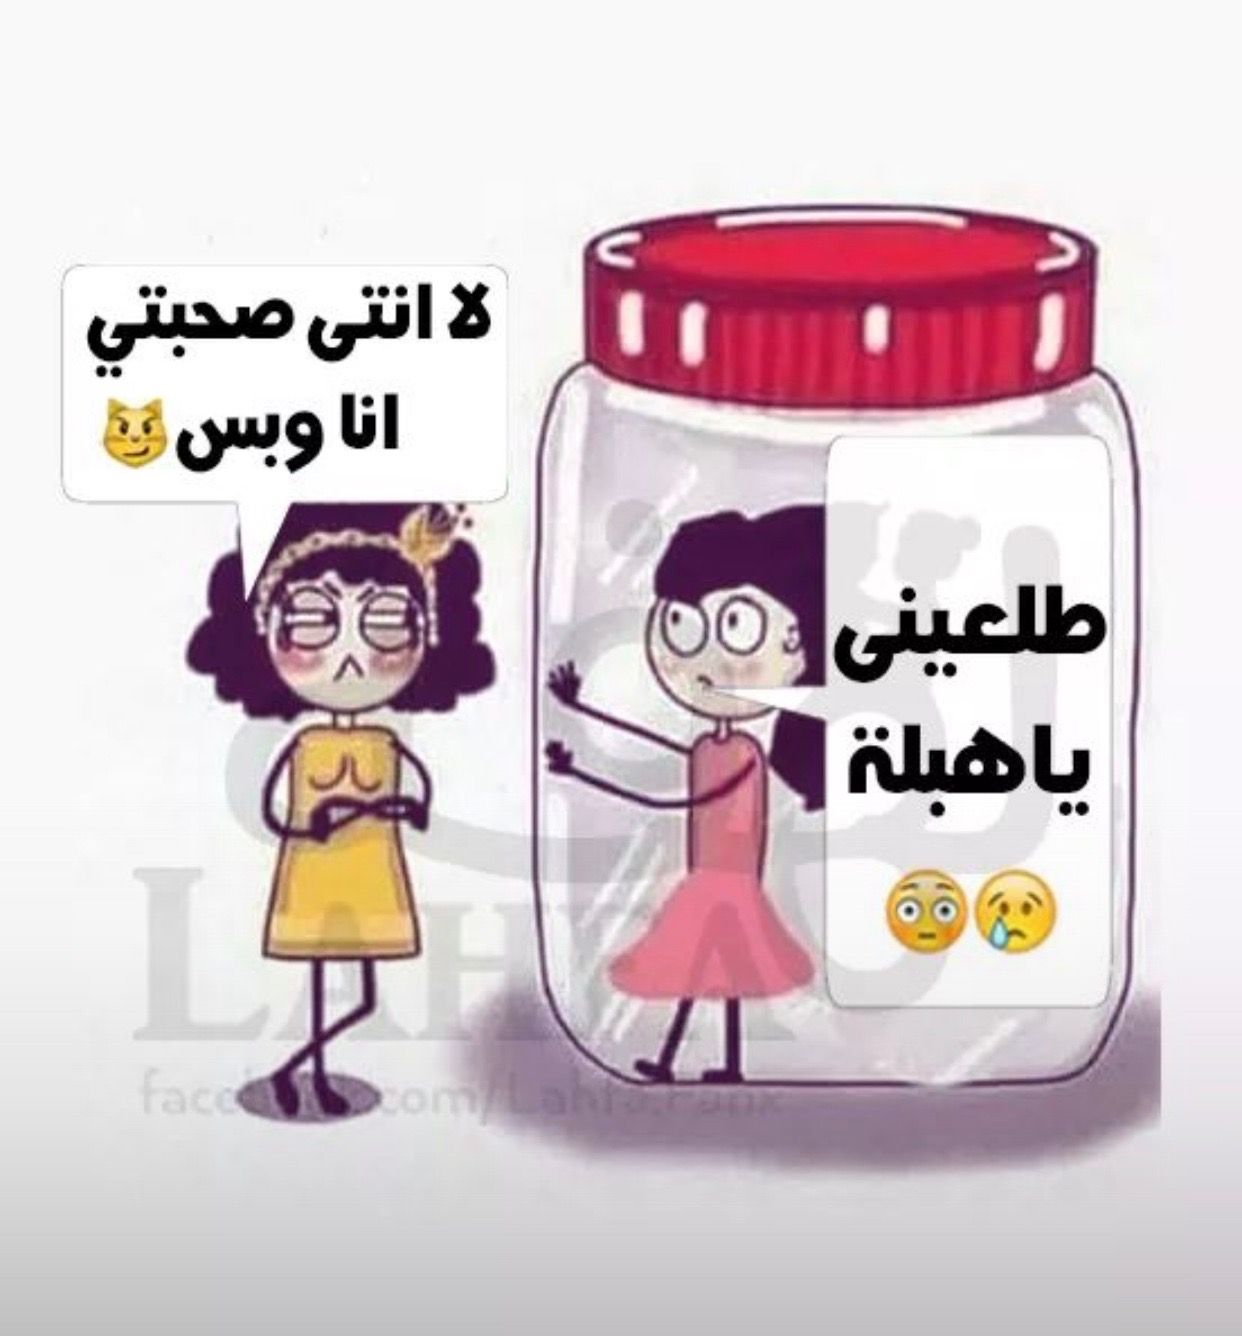 دخيل رب الهبلة انتيمتي Friends Quotes Funny Cartoon Quotes Friends Quotes